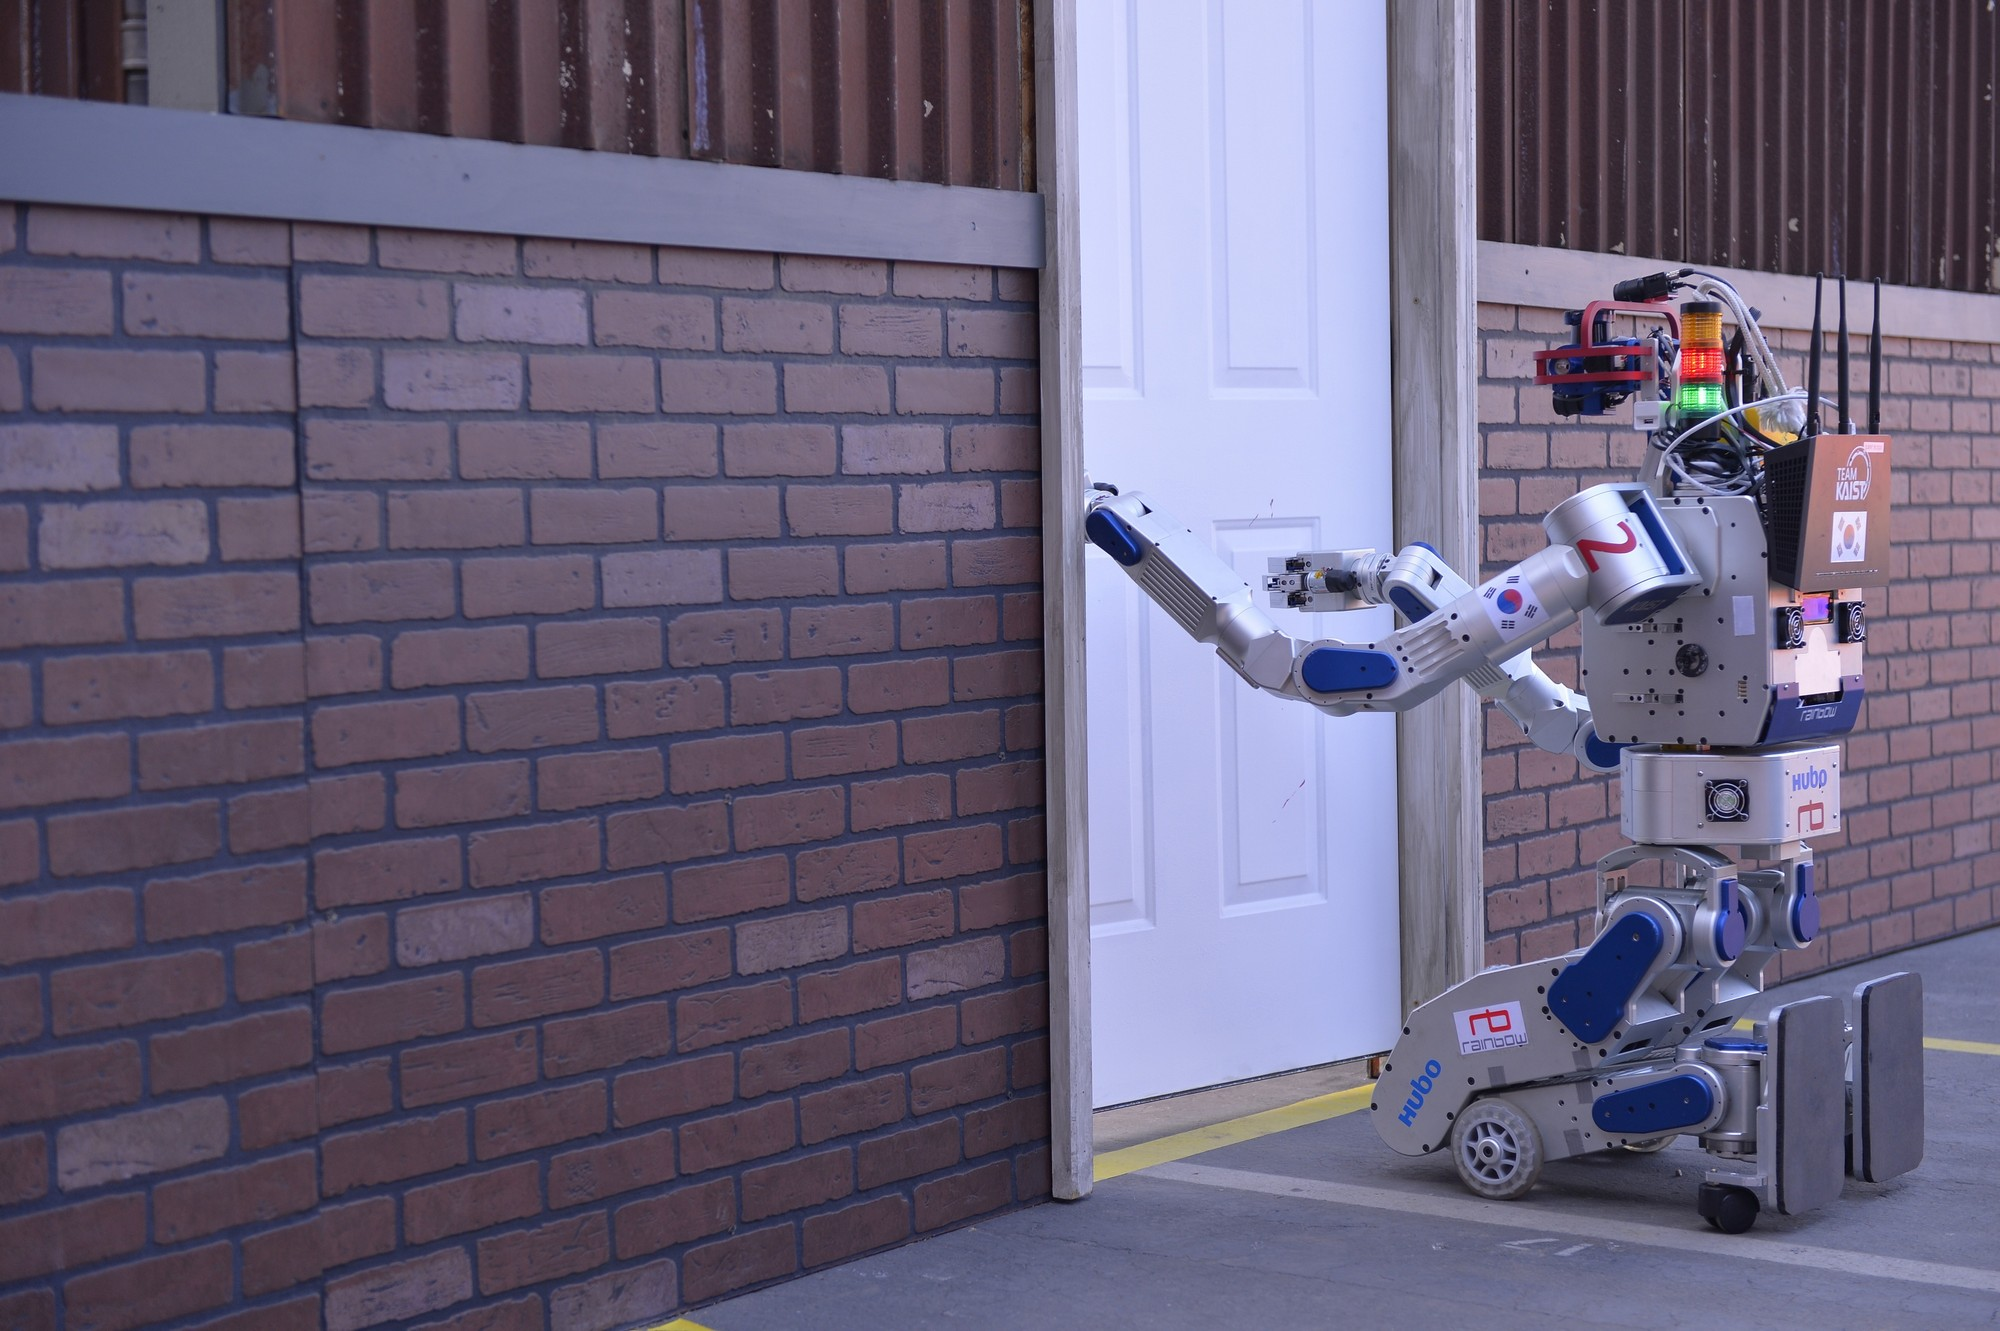 KAIST's HUBO robot opening a door on the first day of the challenge  on June 5.